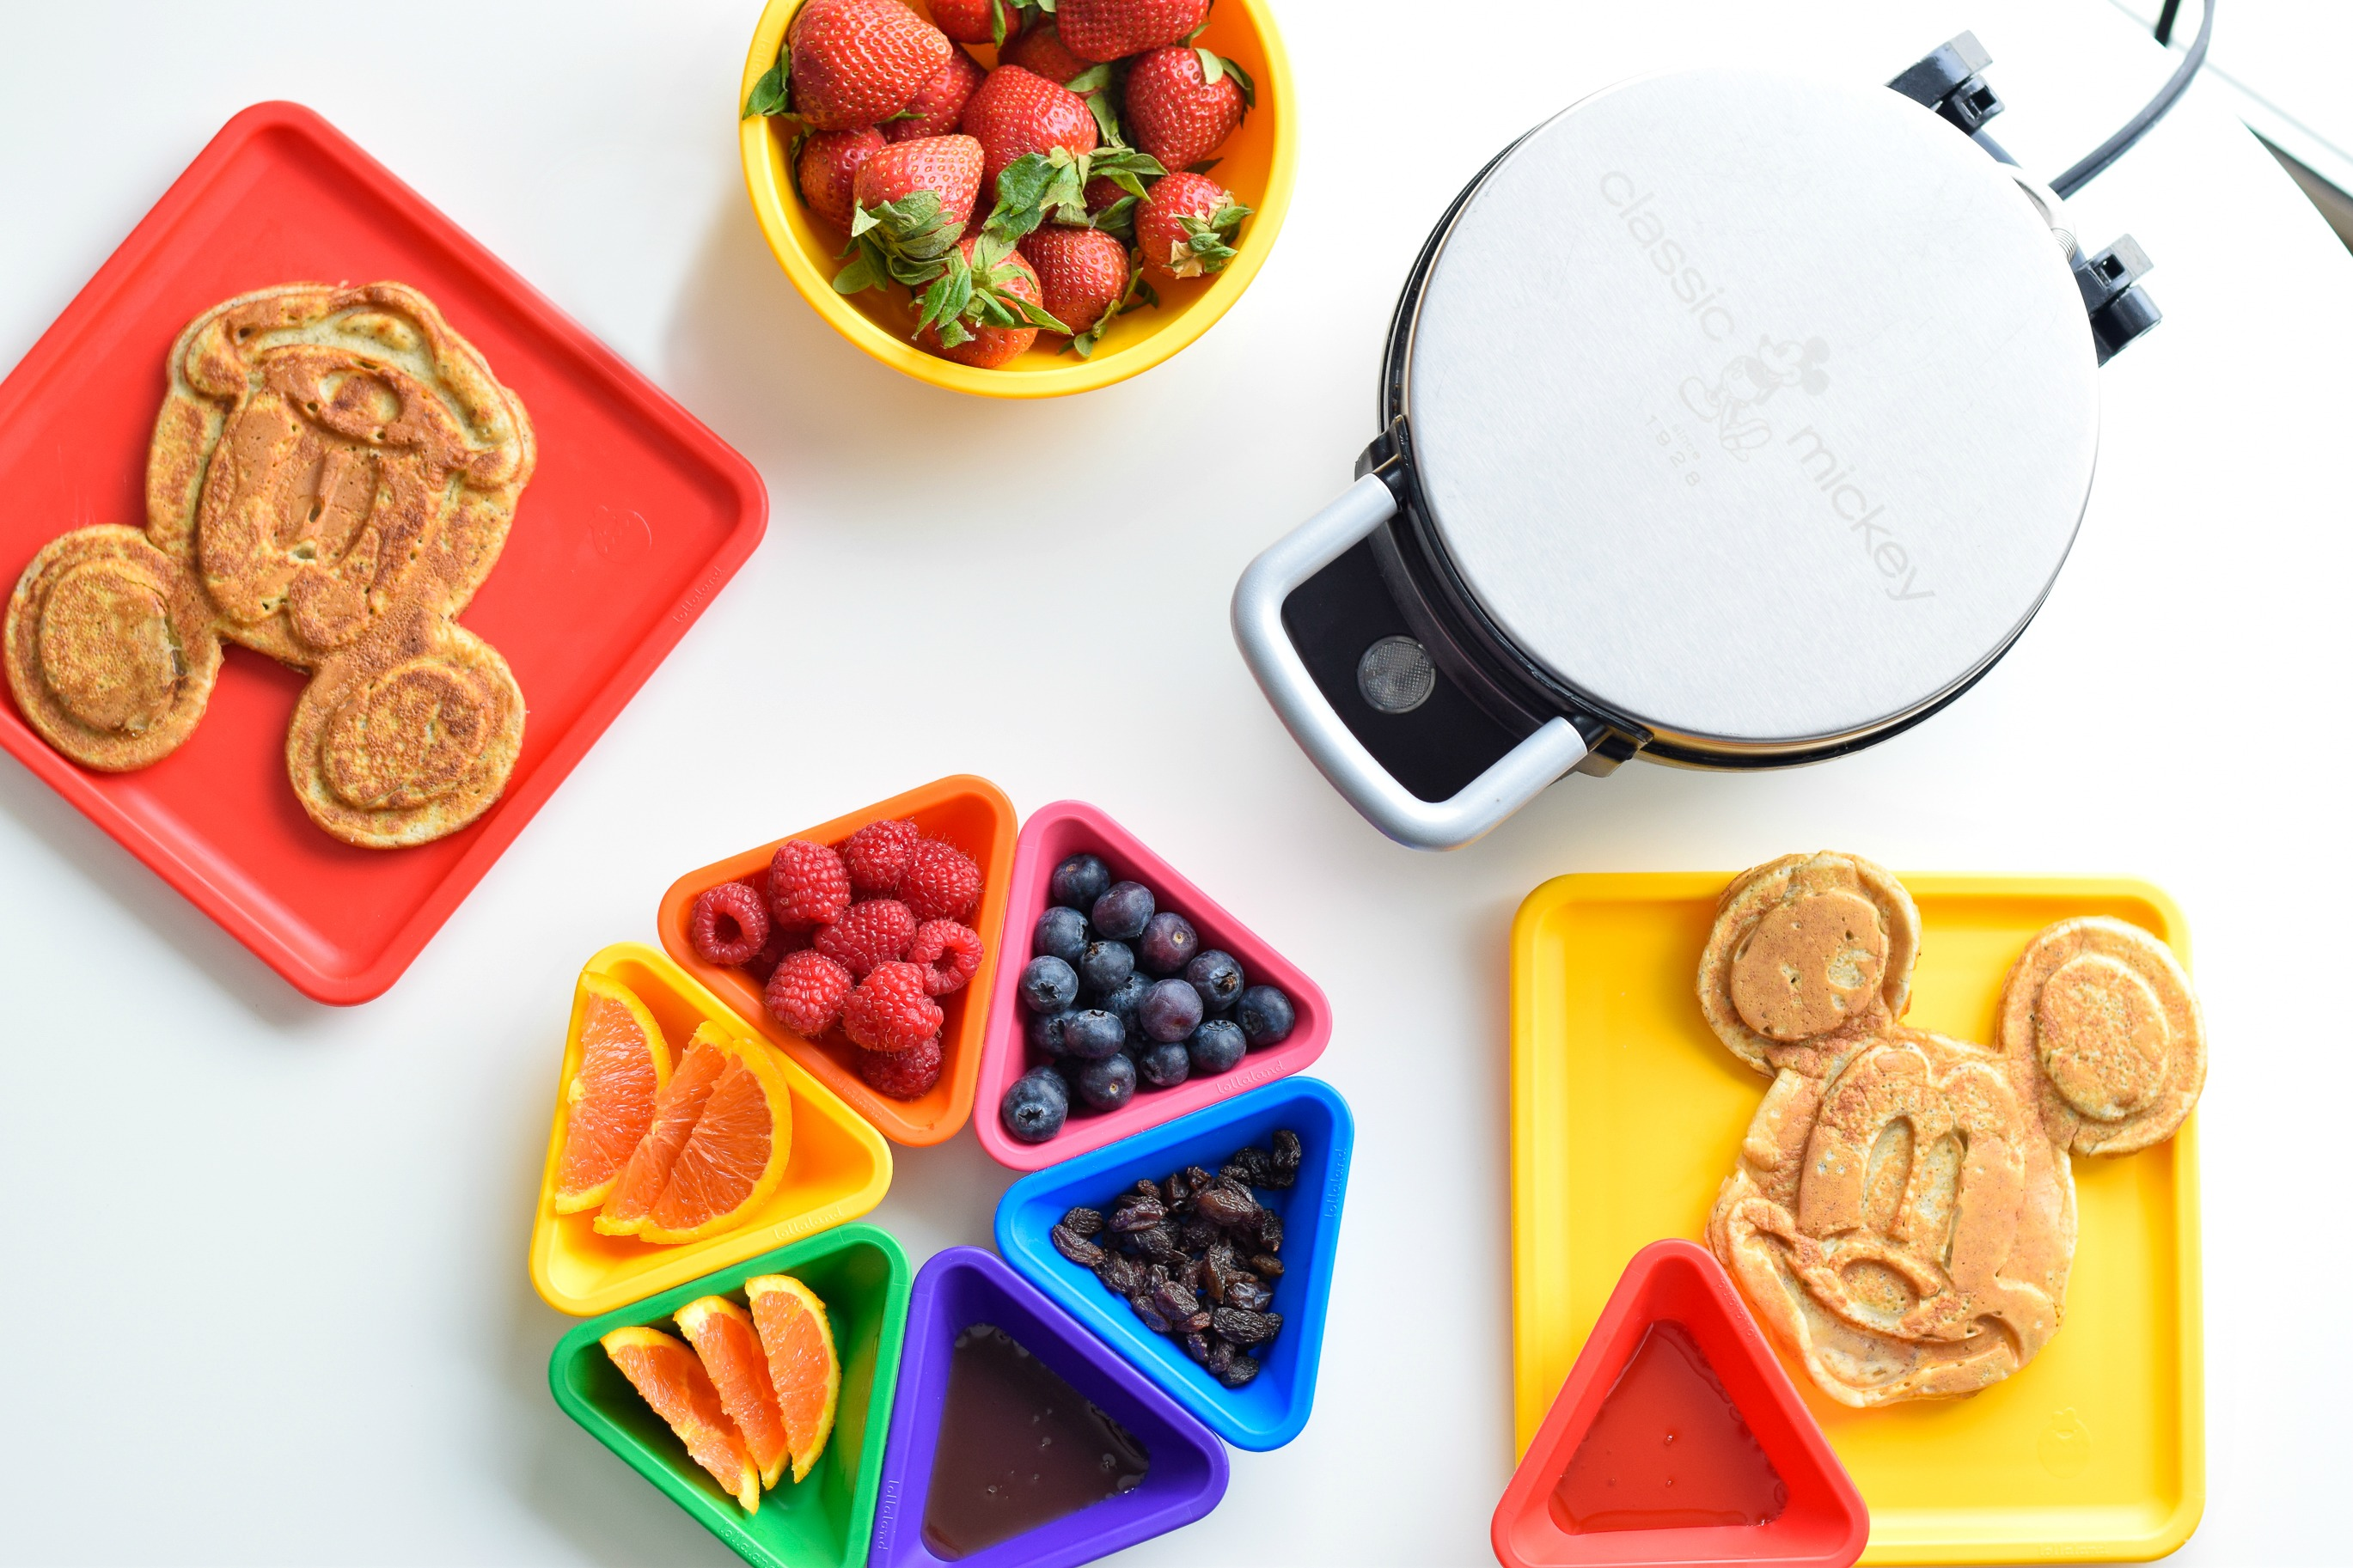 Mickey Mouse Waffles With A Healthier Twist